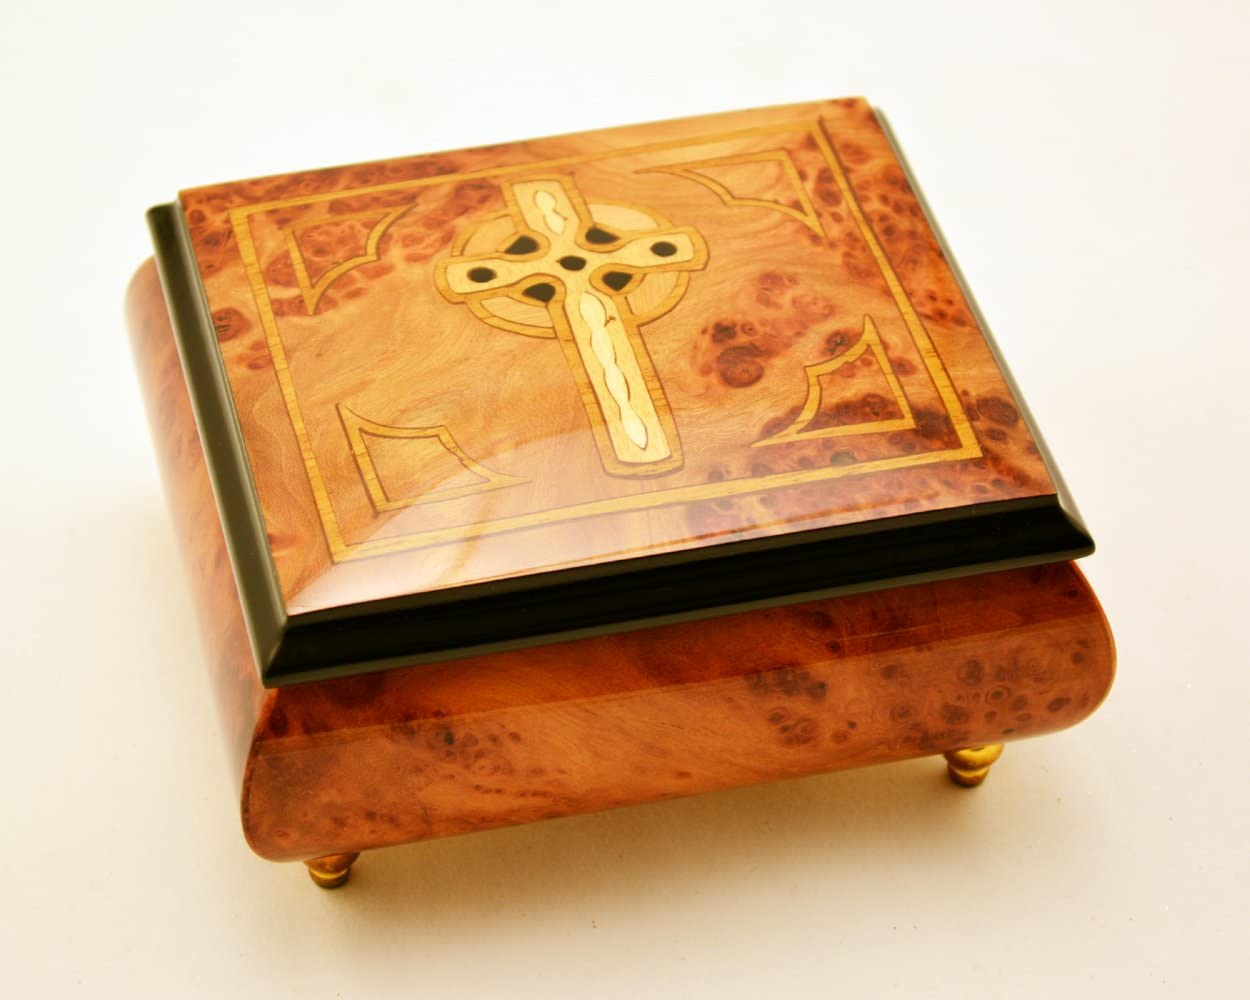 Made in Italy Sorrento Inlaid Celtic Cross Music Box - Clair De Lune (Sankyo 18-Notes)